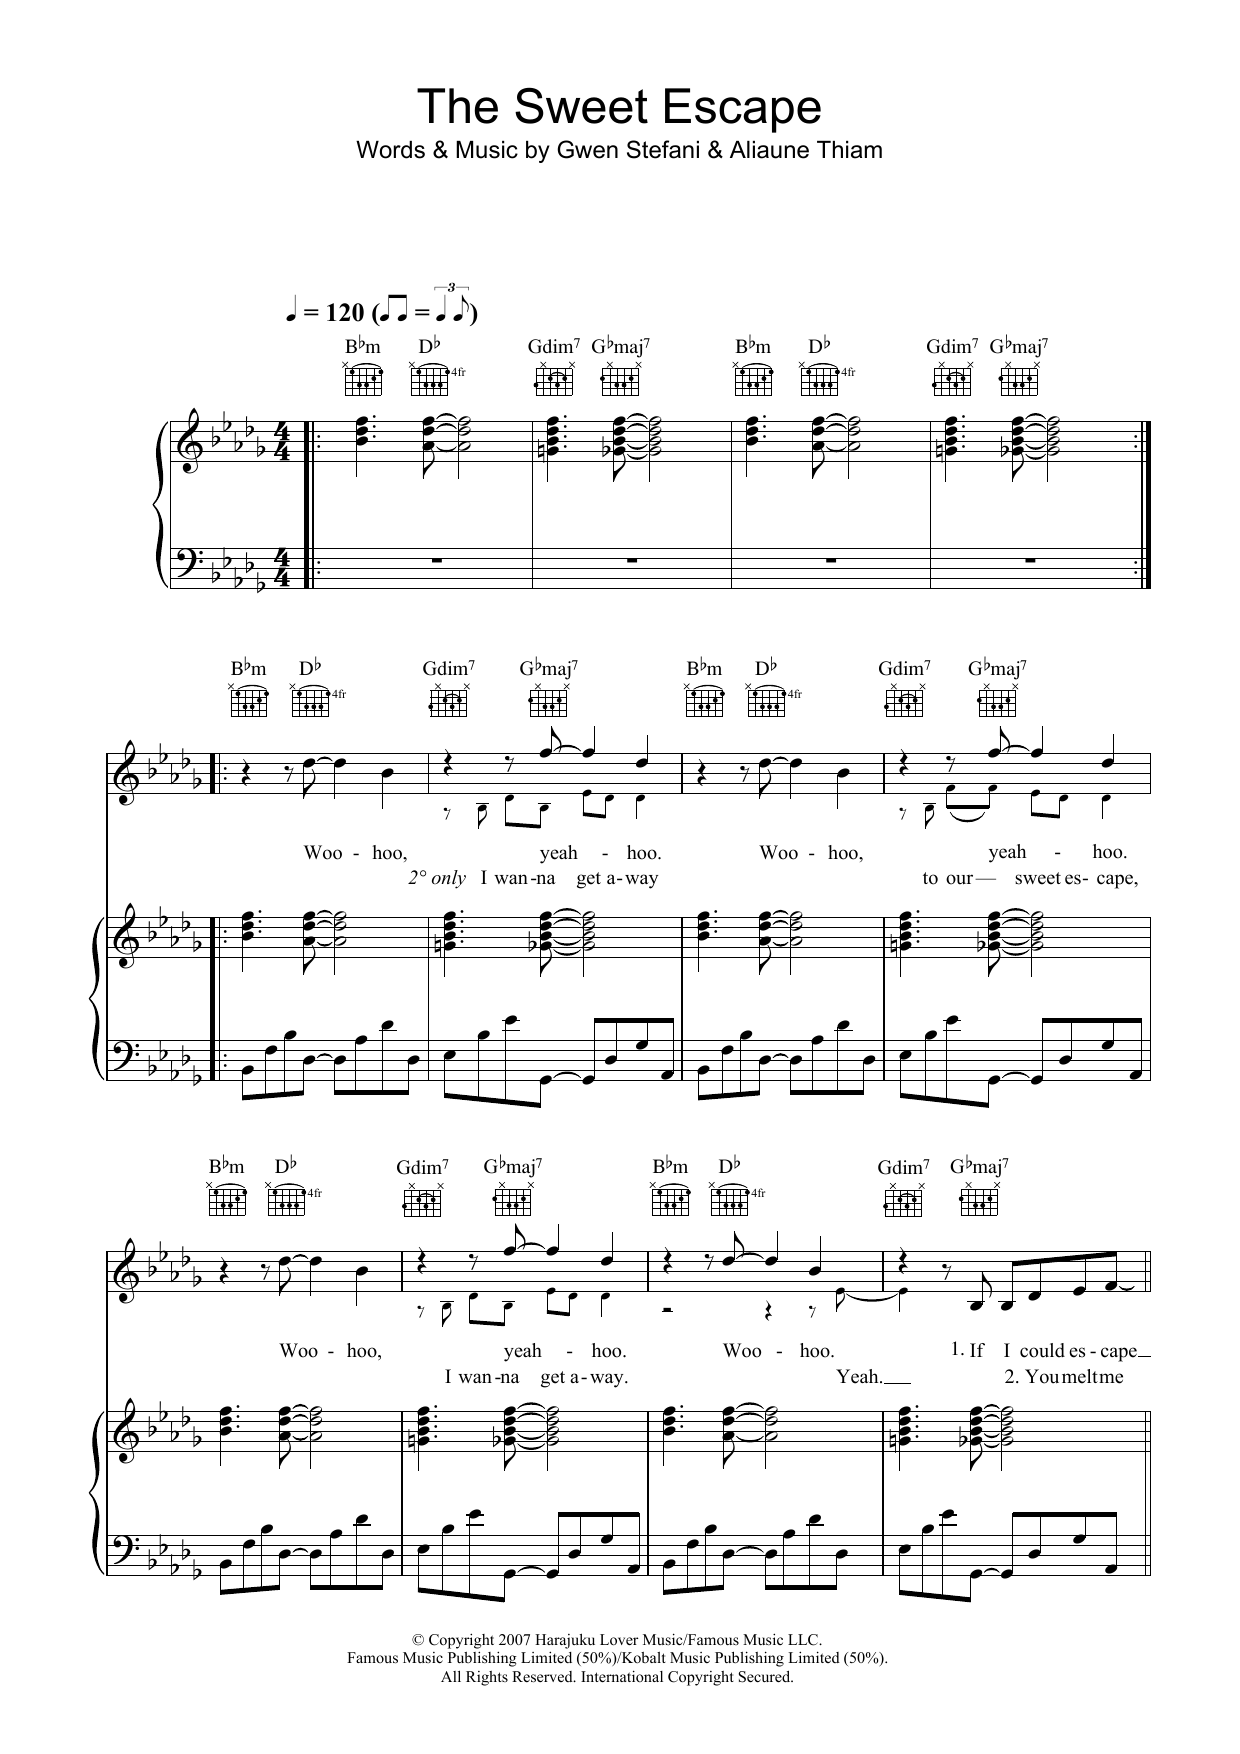 The Sweet Escape (featuring Akon) Sheet Music